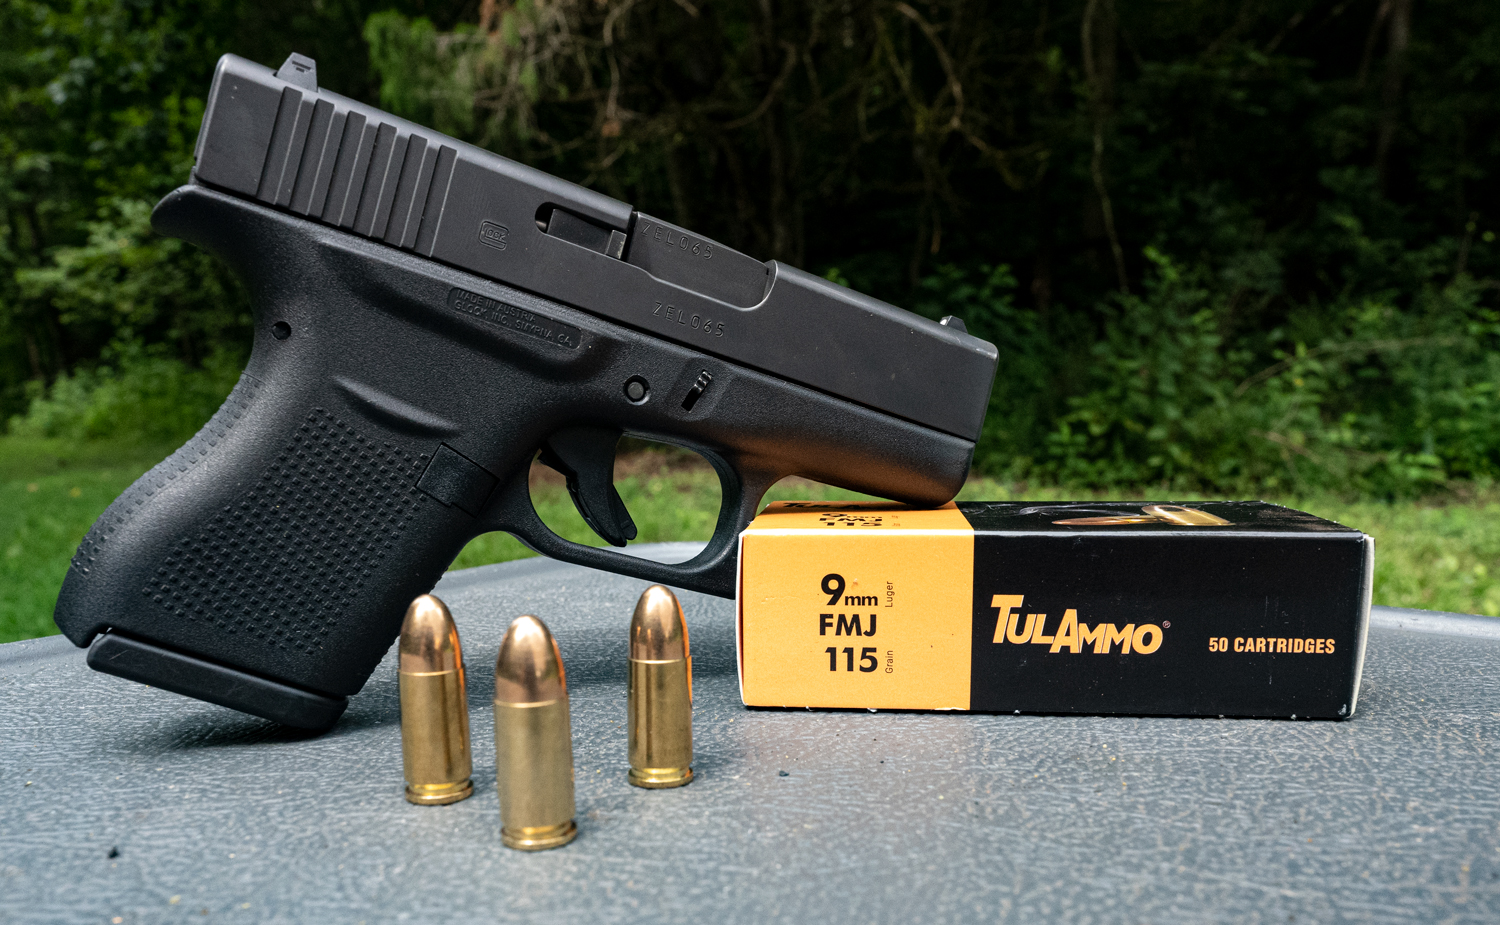 Glock 9mm with Tula ammo